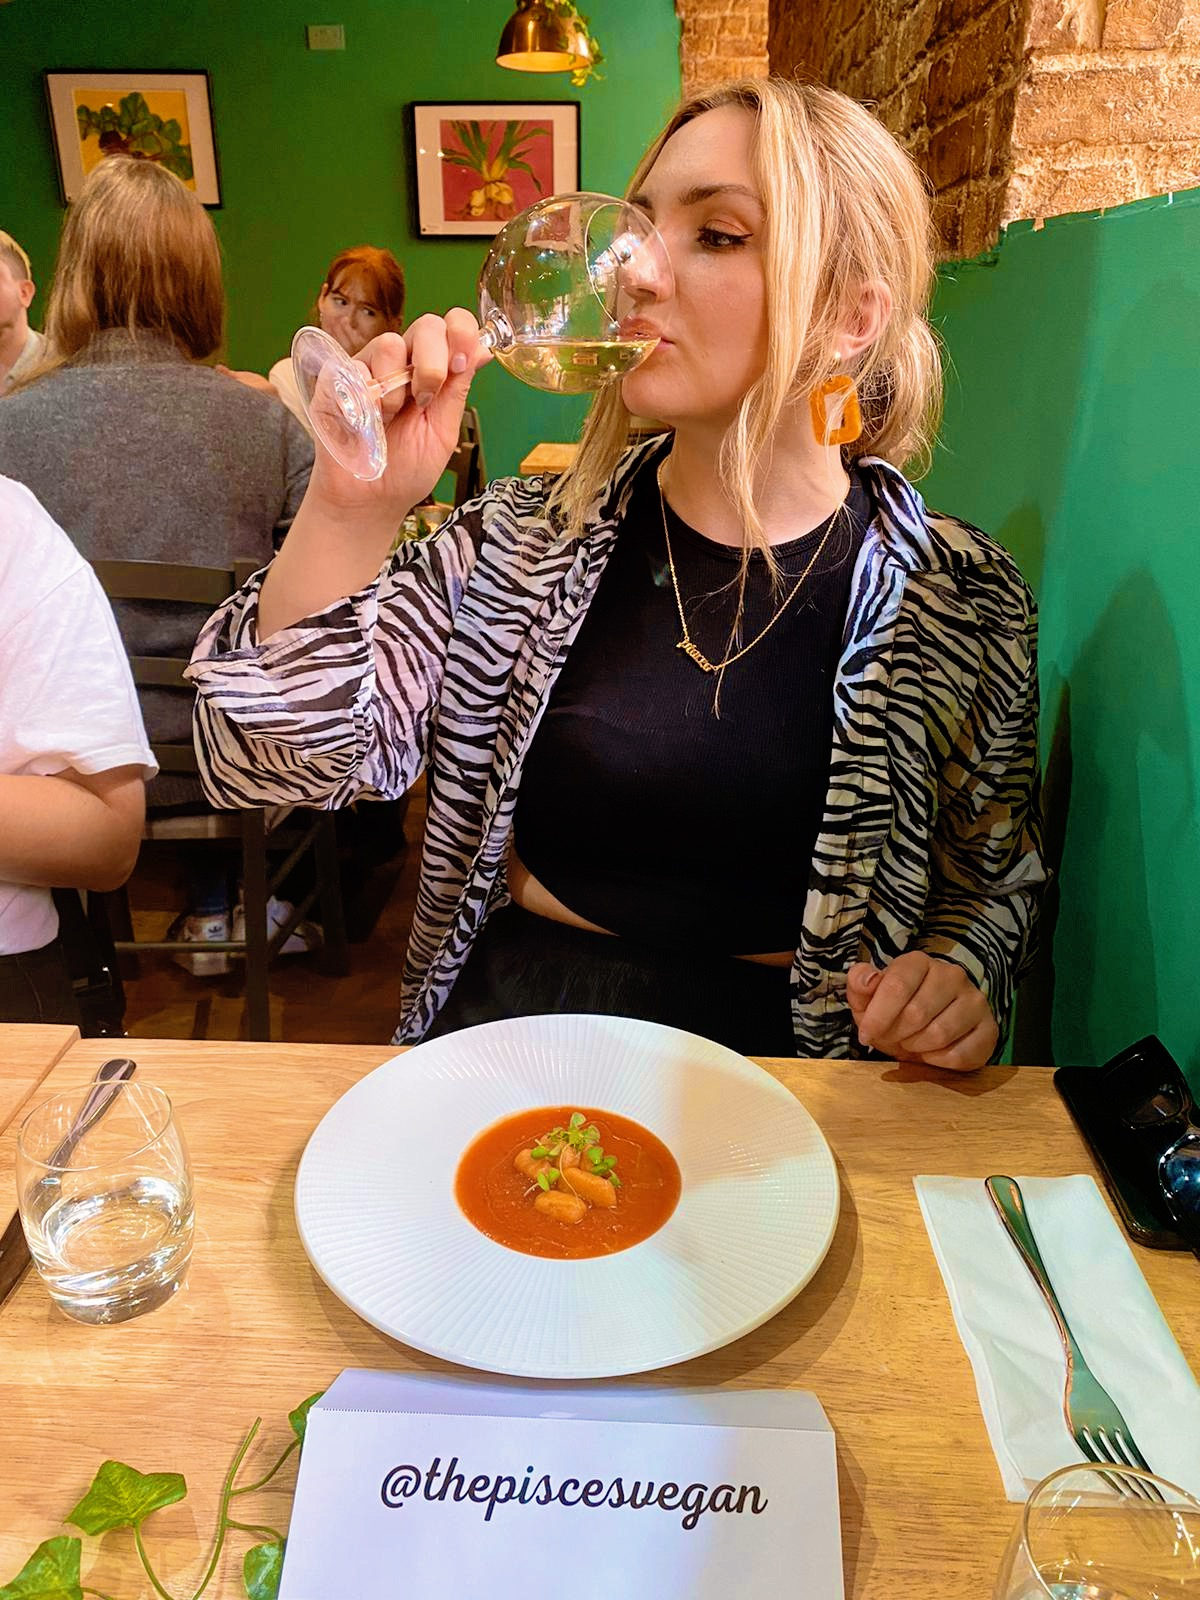 The Pisces Vegan eating soup and drinking wine in a restaurant